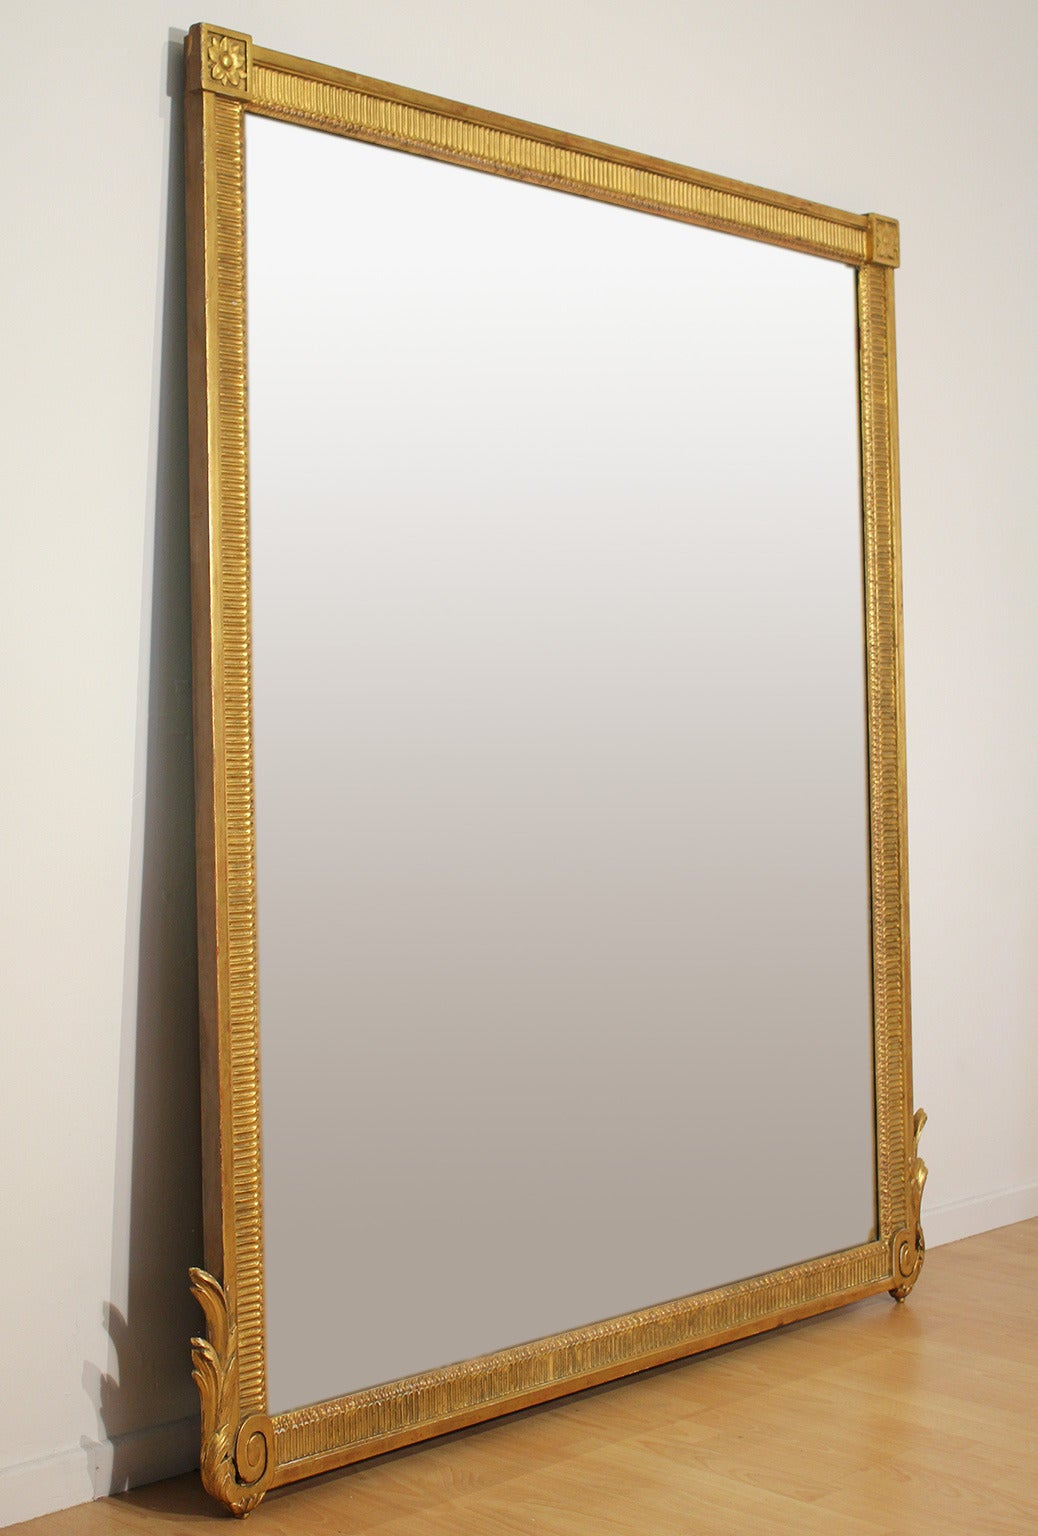 Large antique french neoclassical decorative gold framed Large mirror on wall